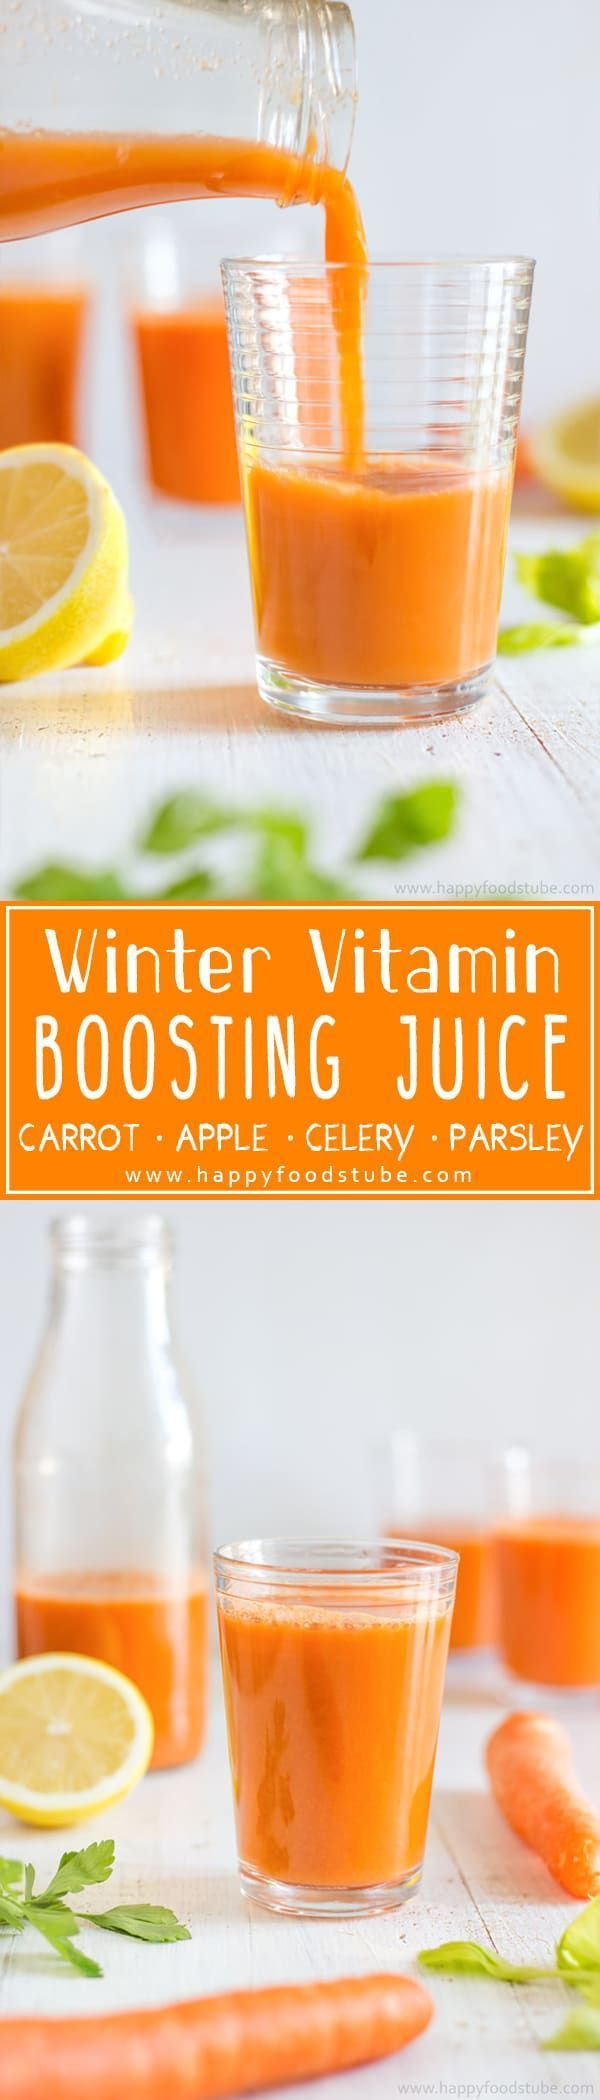 Winter Vitamin Boosting Juice will help you stay healthy throughout cold season. It's homemade, rich in Vitamin C & ready in 5 minutes. Only 5 ingredients - carrot, apple, celery and parsley. #vitaminboosting #juice #recipe #weightloss #healthy #juicing #